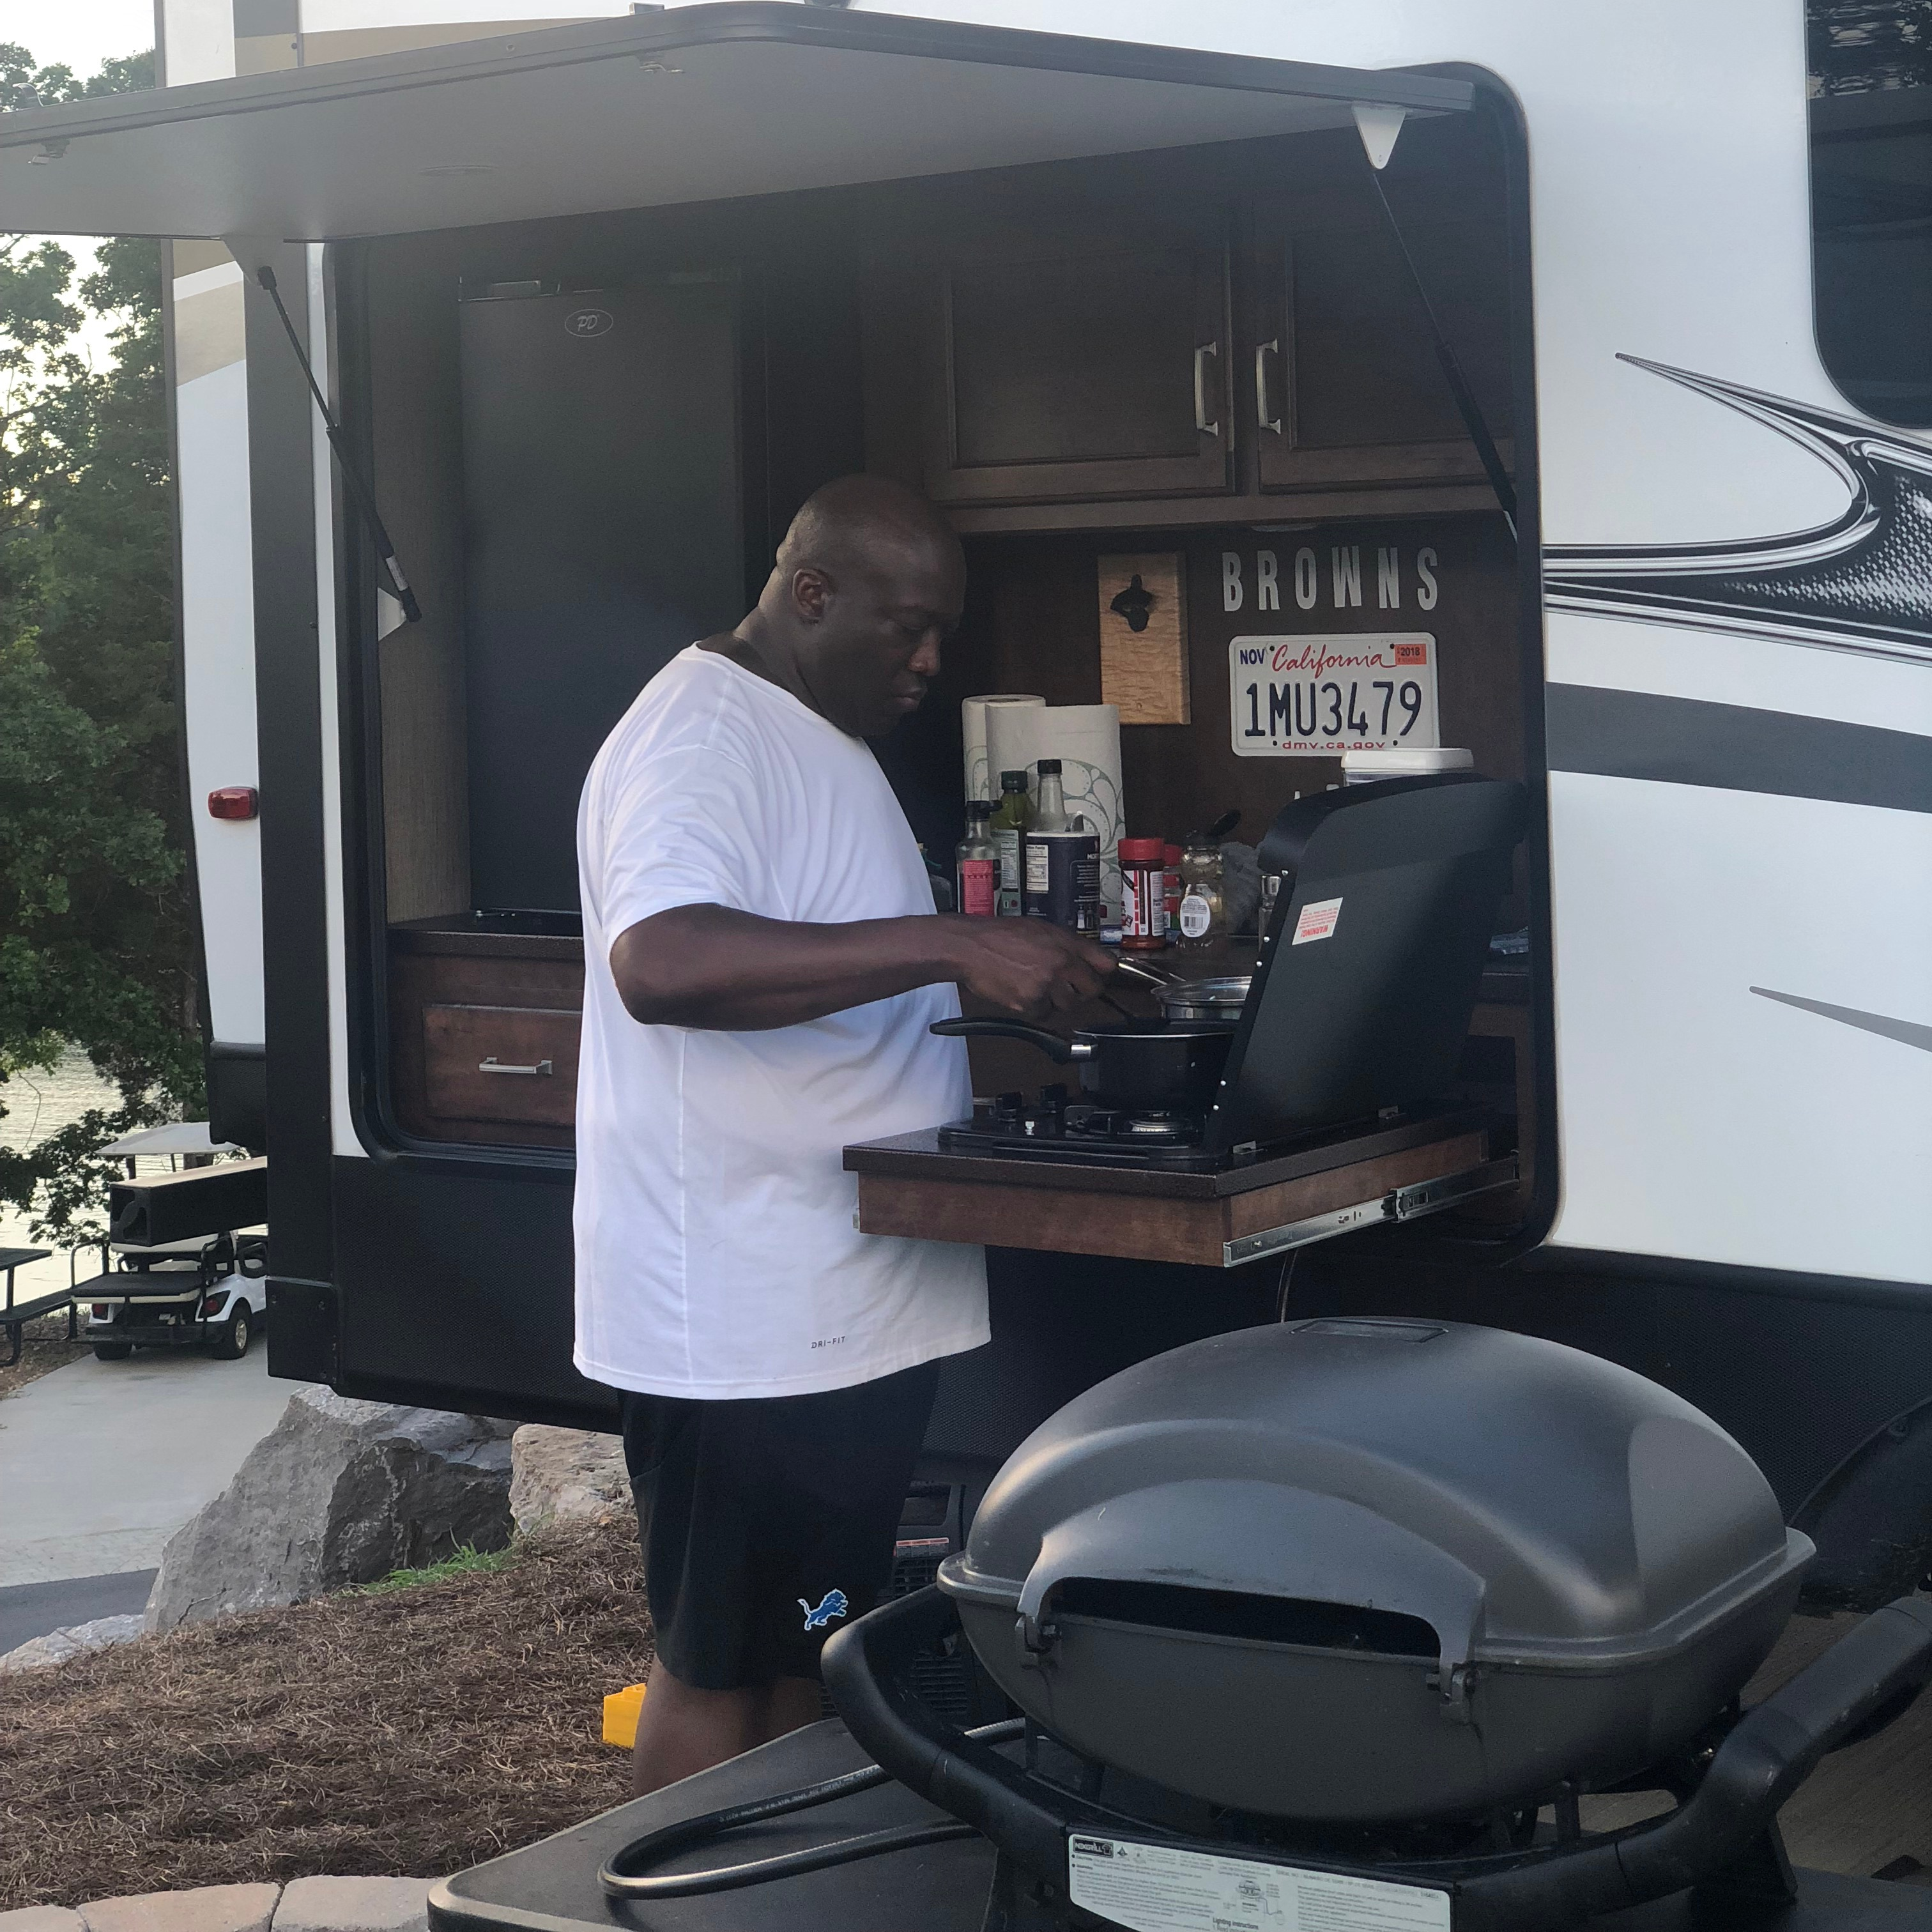 RVers love cooking in their outdoor kitchen when at the campground